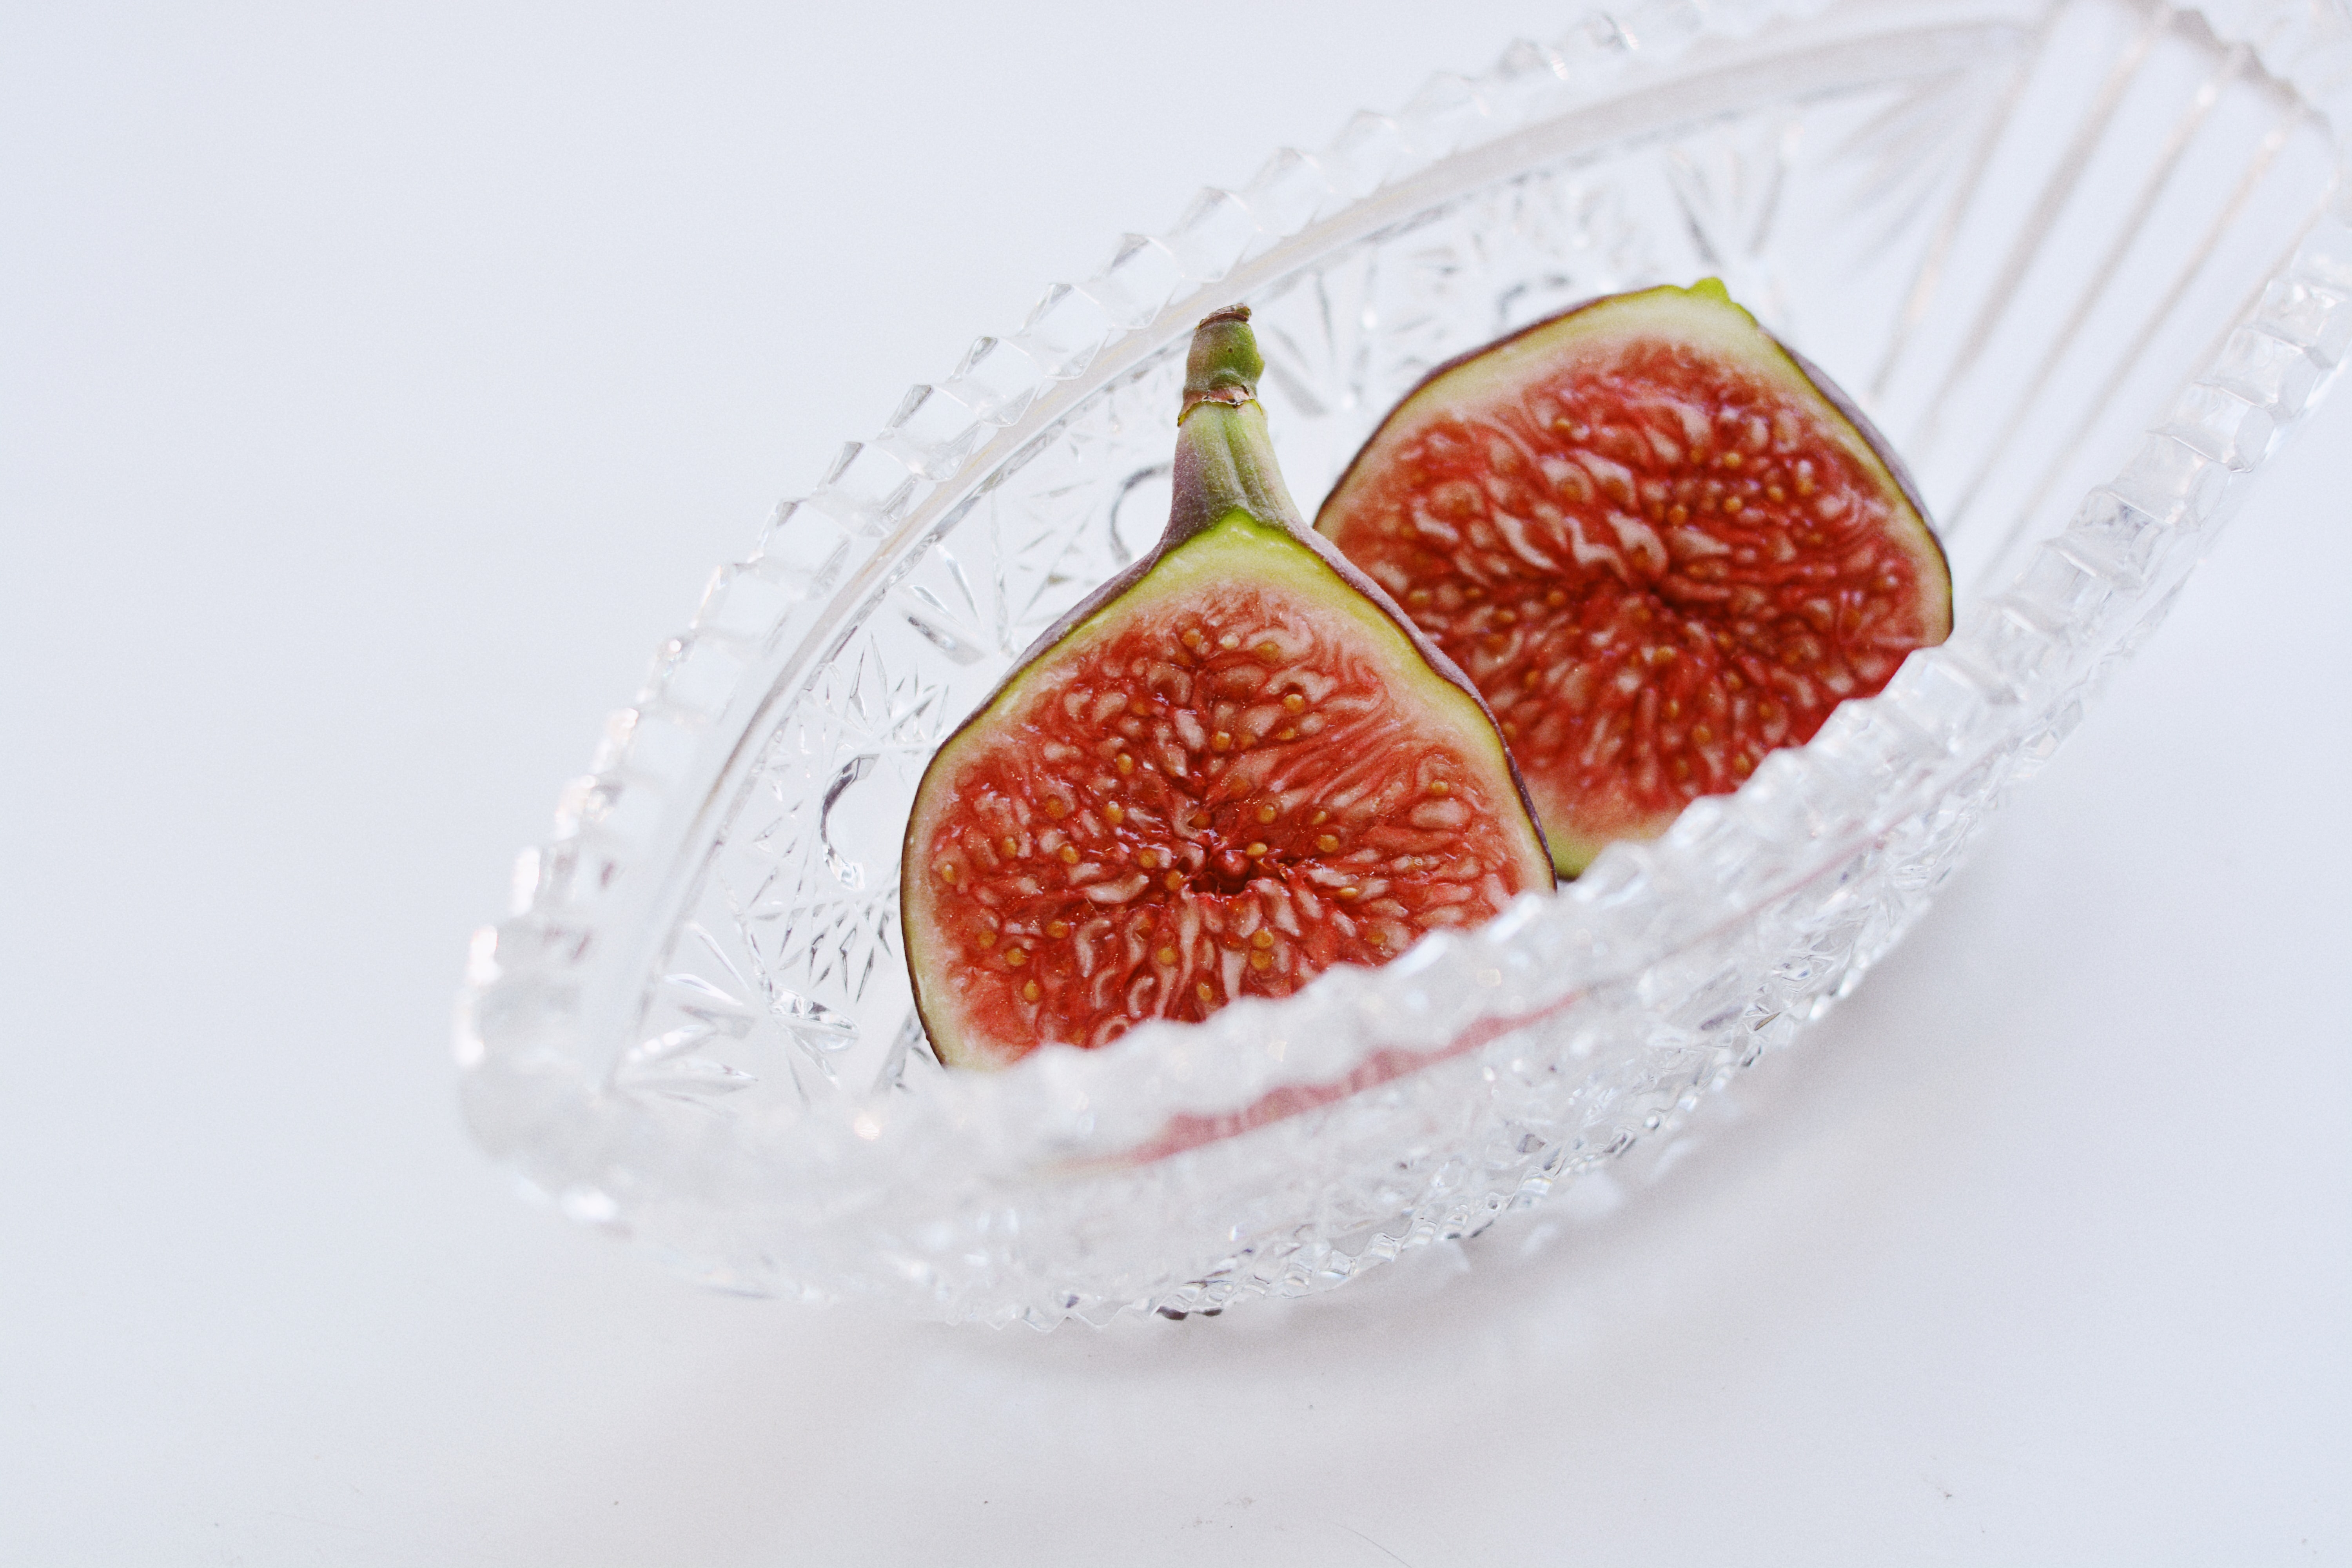 sliced red fruit in clear glass bowl